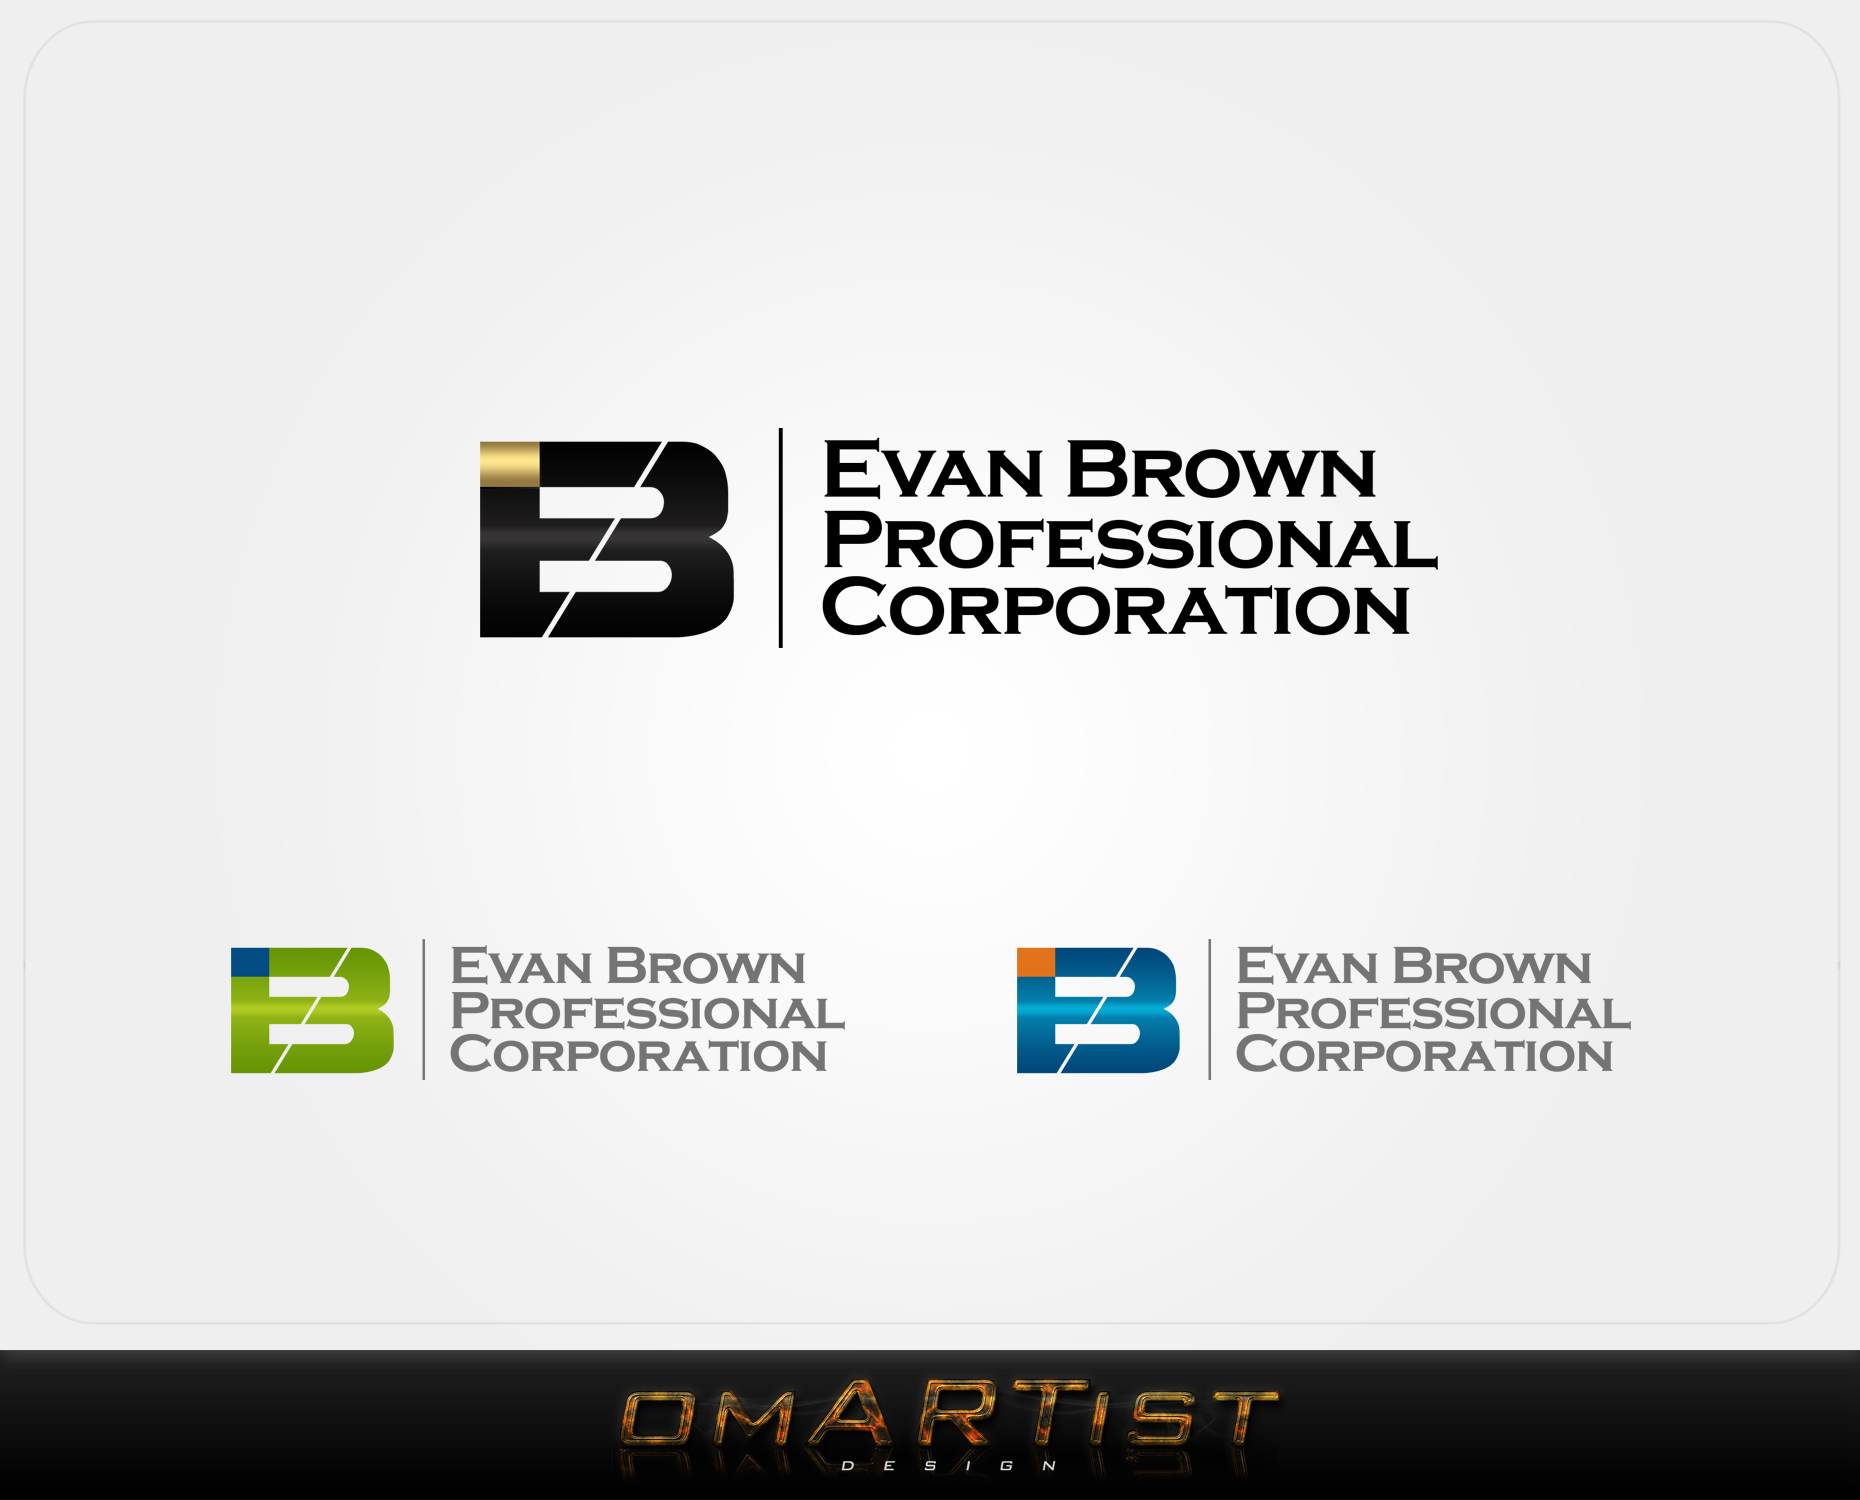 Logo Design by omARTist - Entry No. 2 in the Logo Design Contest Inspiring Logo Design for Evan Brown Professional Corporation.